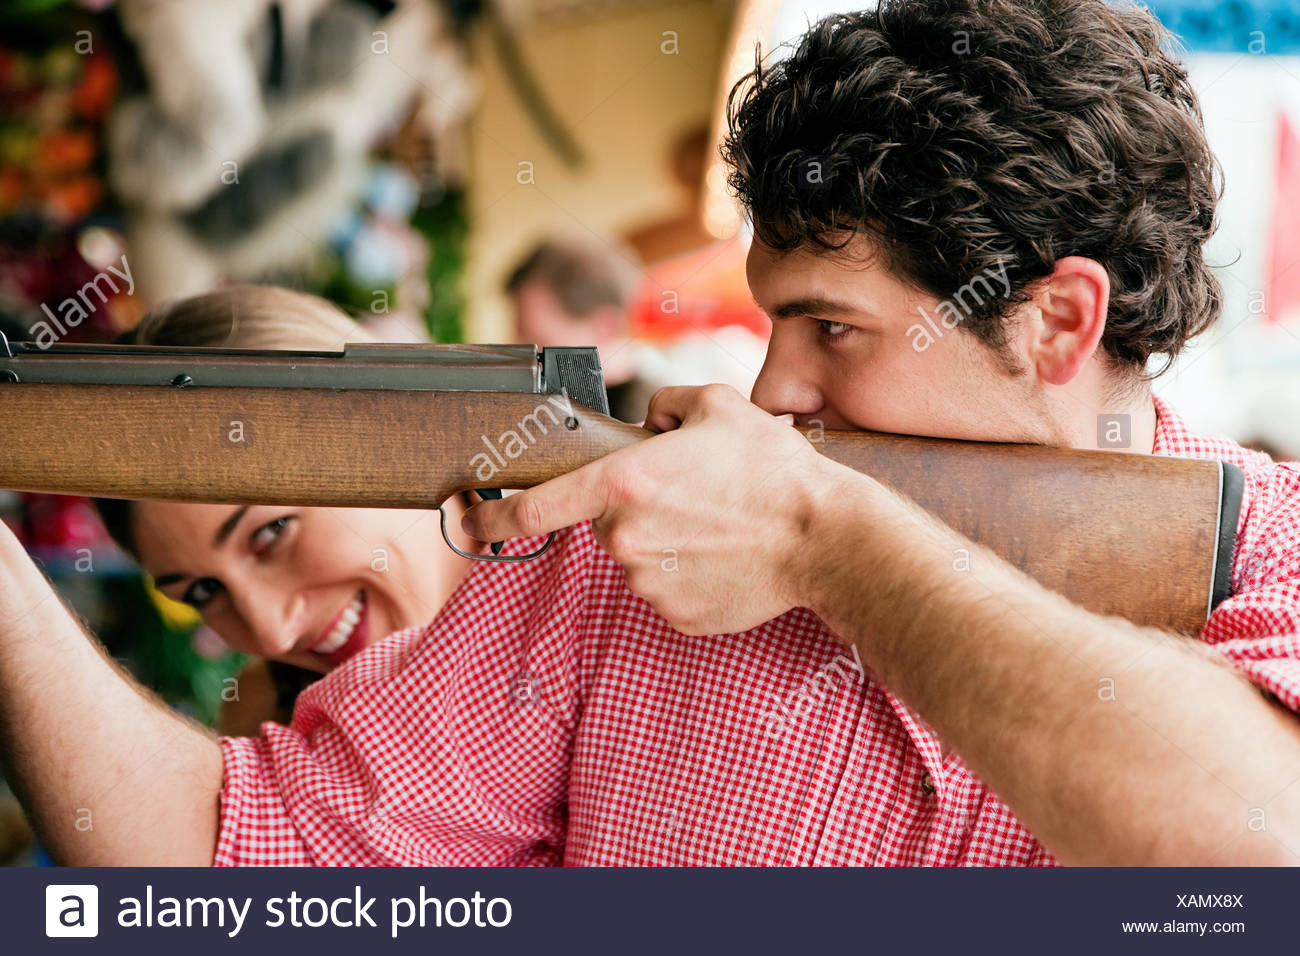 fuss rifle arm - Stock Image